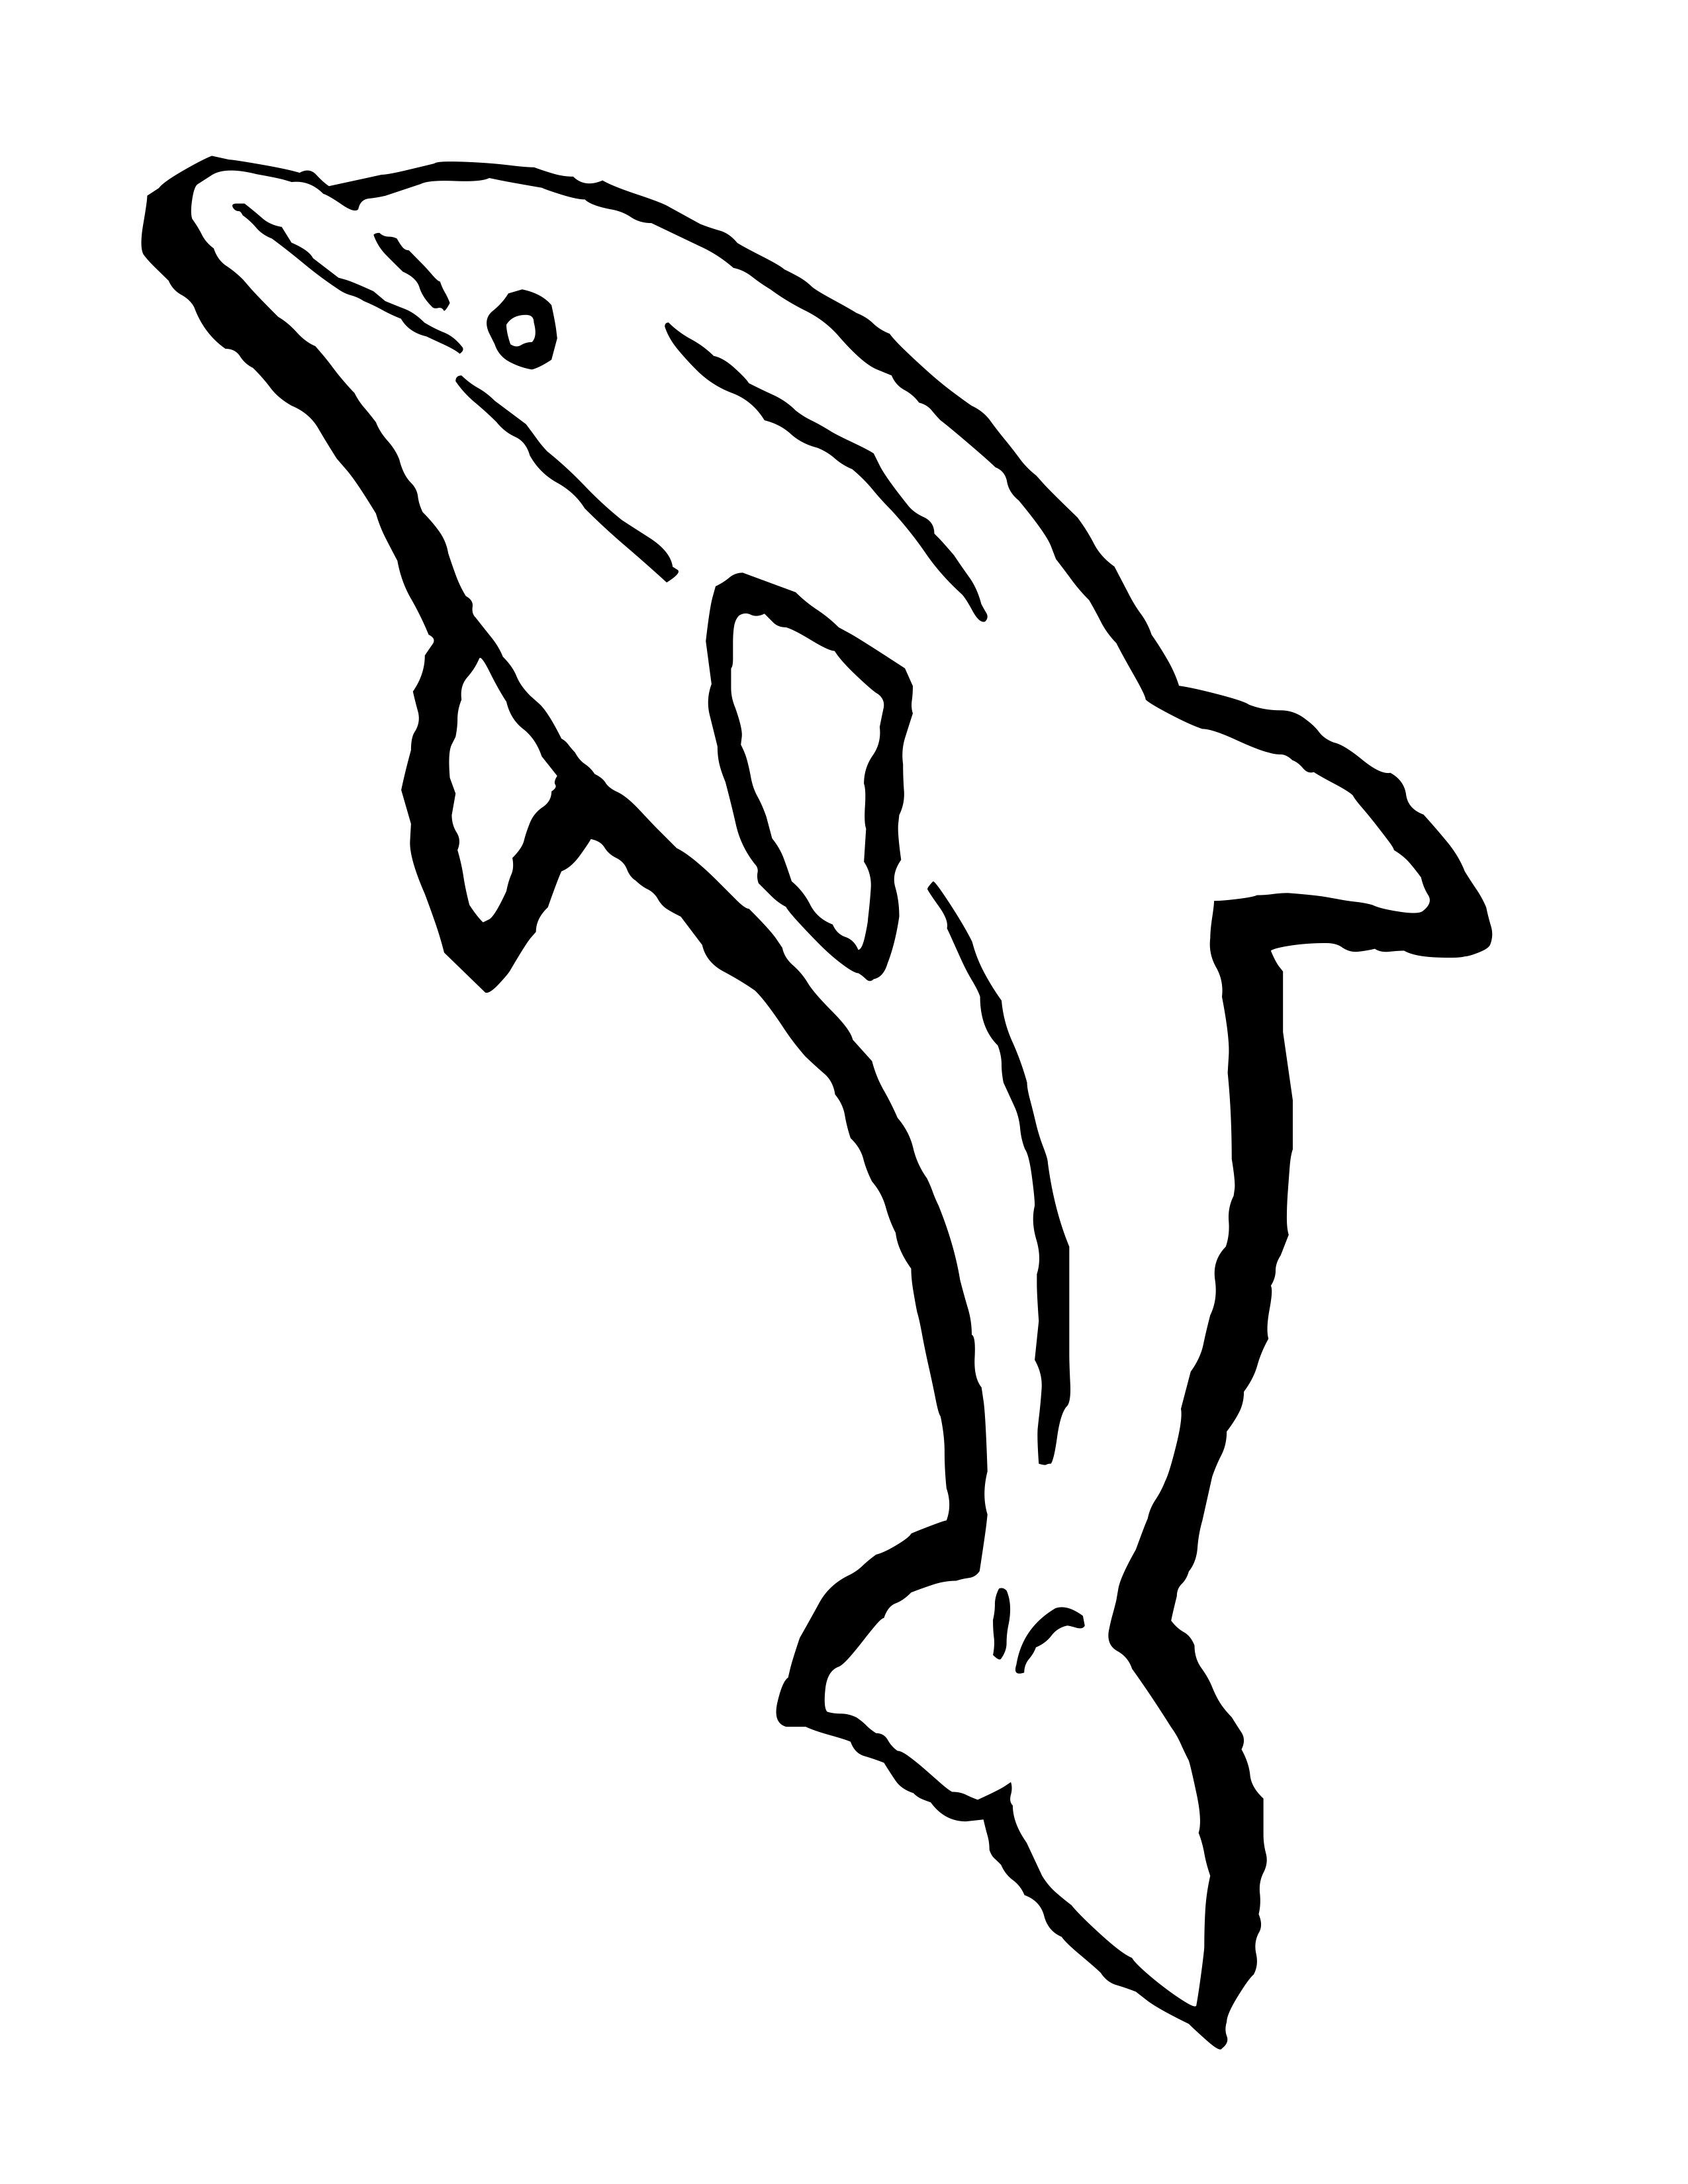 Dolphin outline clipart jpg royalty free library Dolphin Outline Clip Art | Free Dolphin Coloring Pages | dolphin ... jpg royalty free library